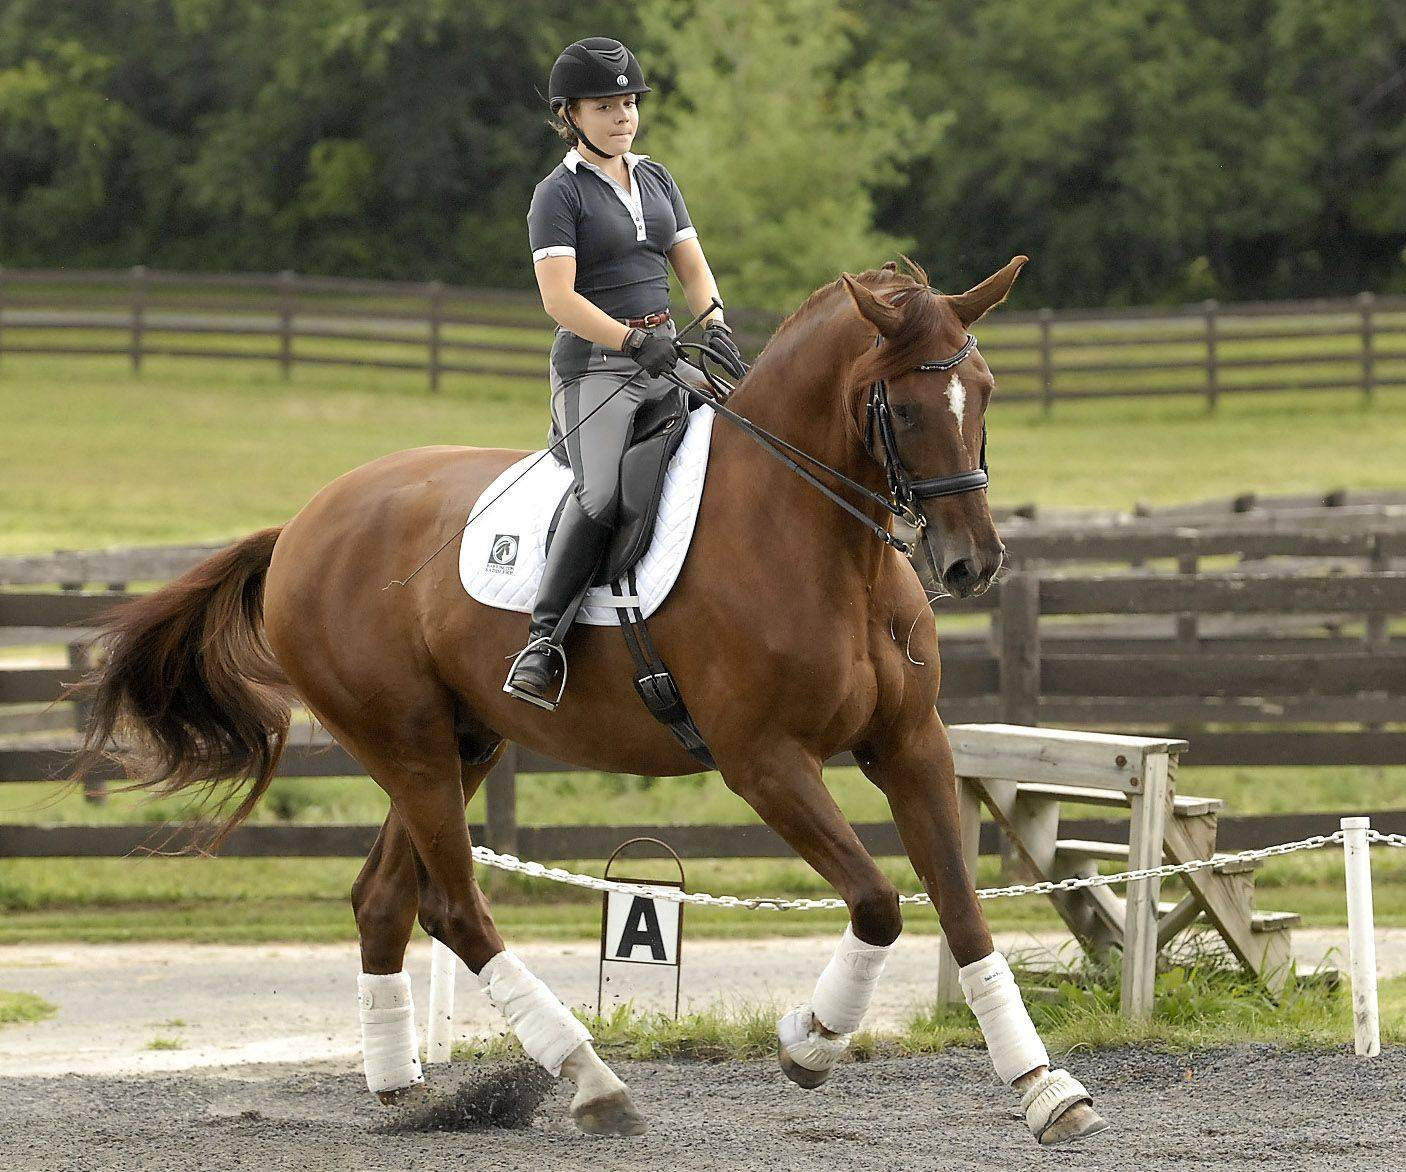 Barrington High School senior Rosie Julian-Simoes and horse Proteus train at the Flying Dutchman Farm in Barrington Hills. She's among the country's top-ranked dressage competitors in her division and has Olympic aspirations.